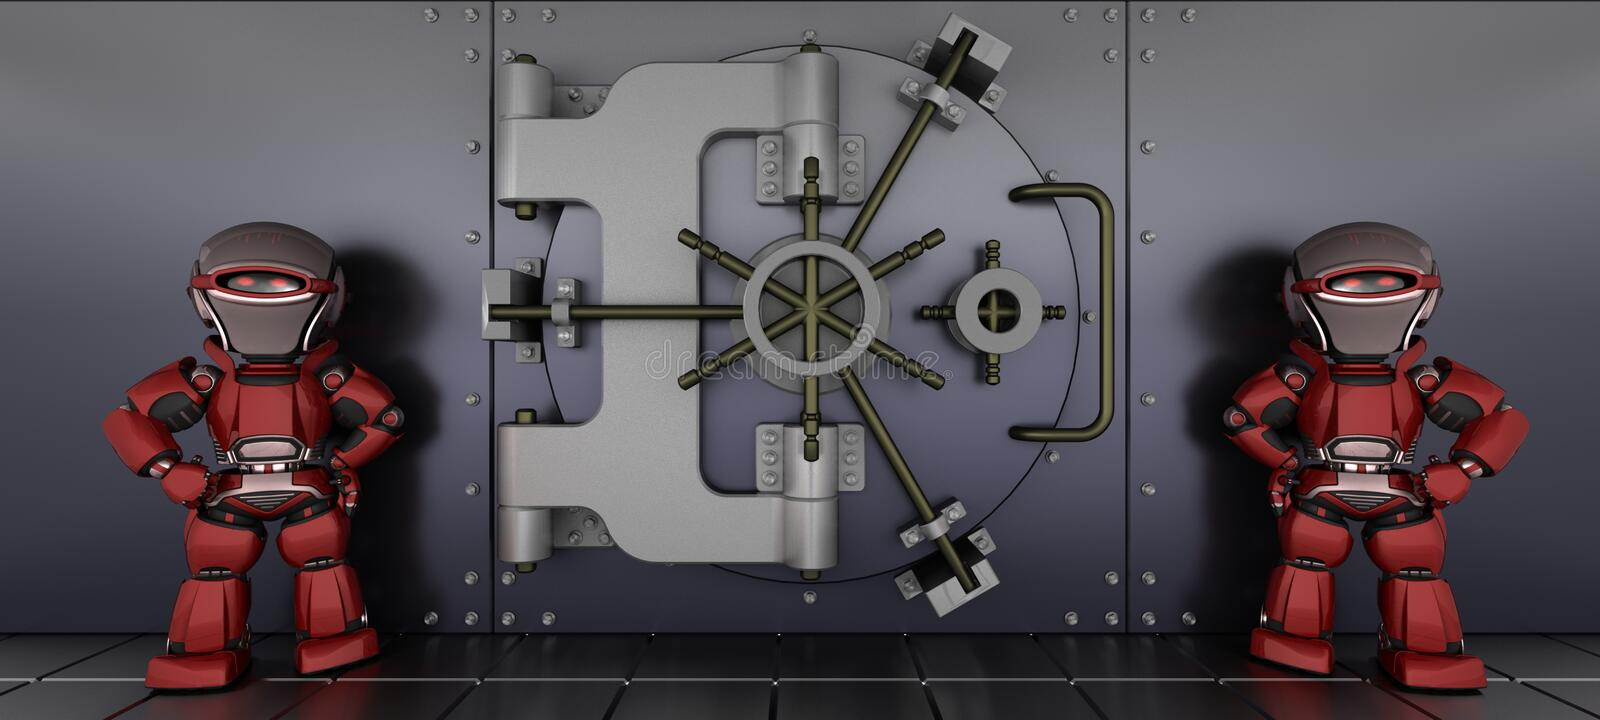 Robots guarding a bank vault stock illustration